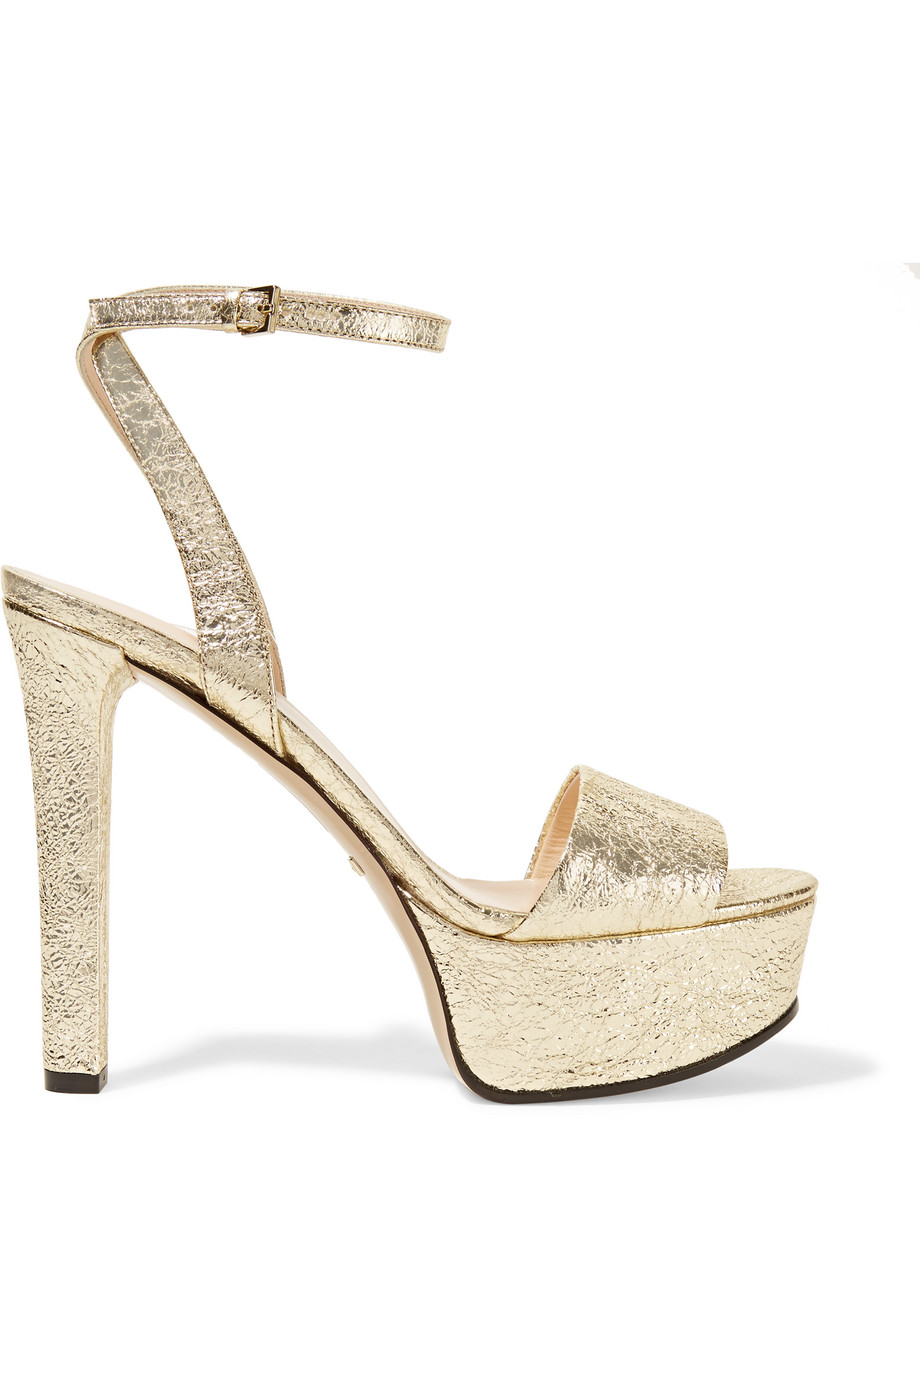 Gucci Metallic Cracked-Leather Platform Sandals, Gold, Women's US Size: 6.5, Size: 37